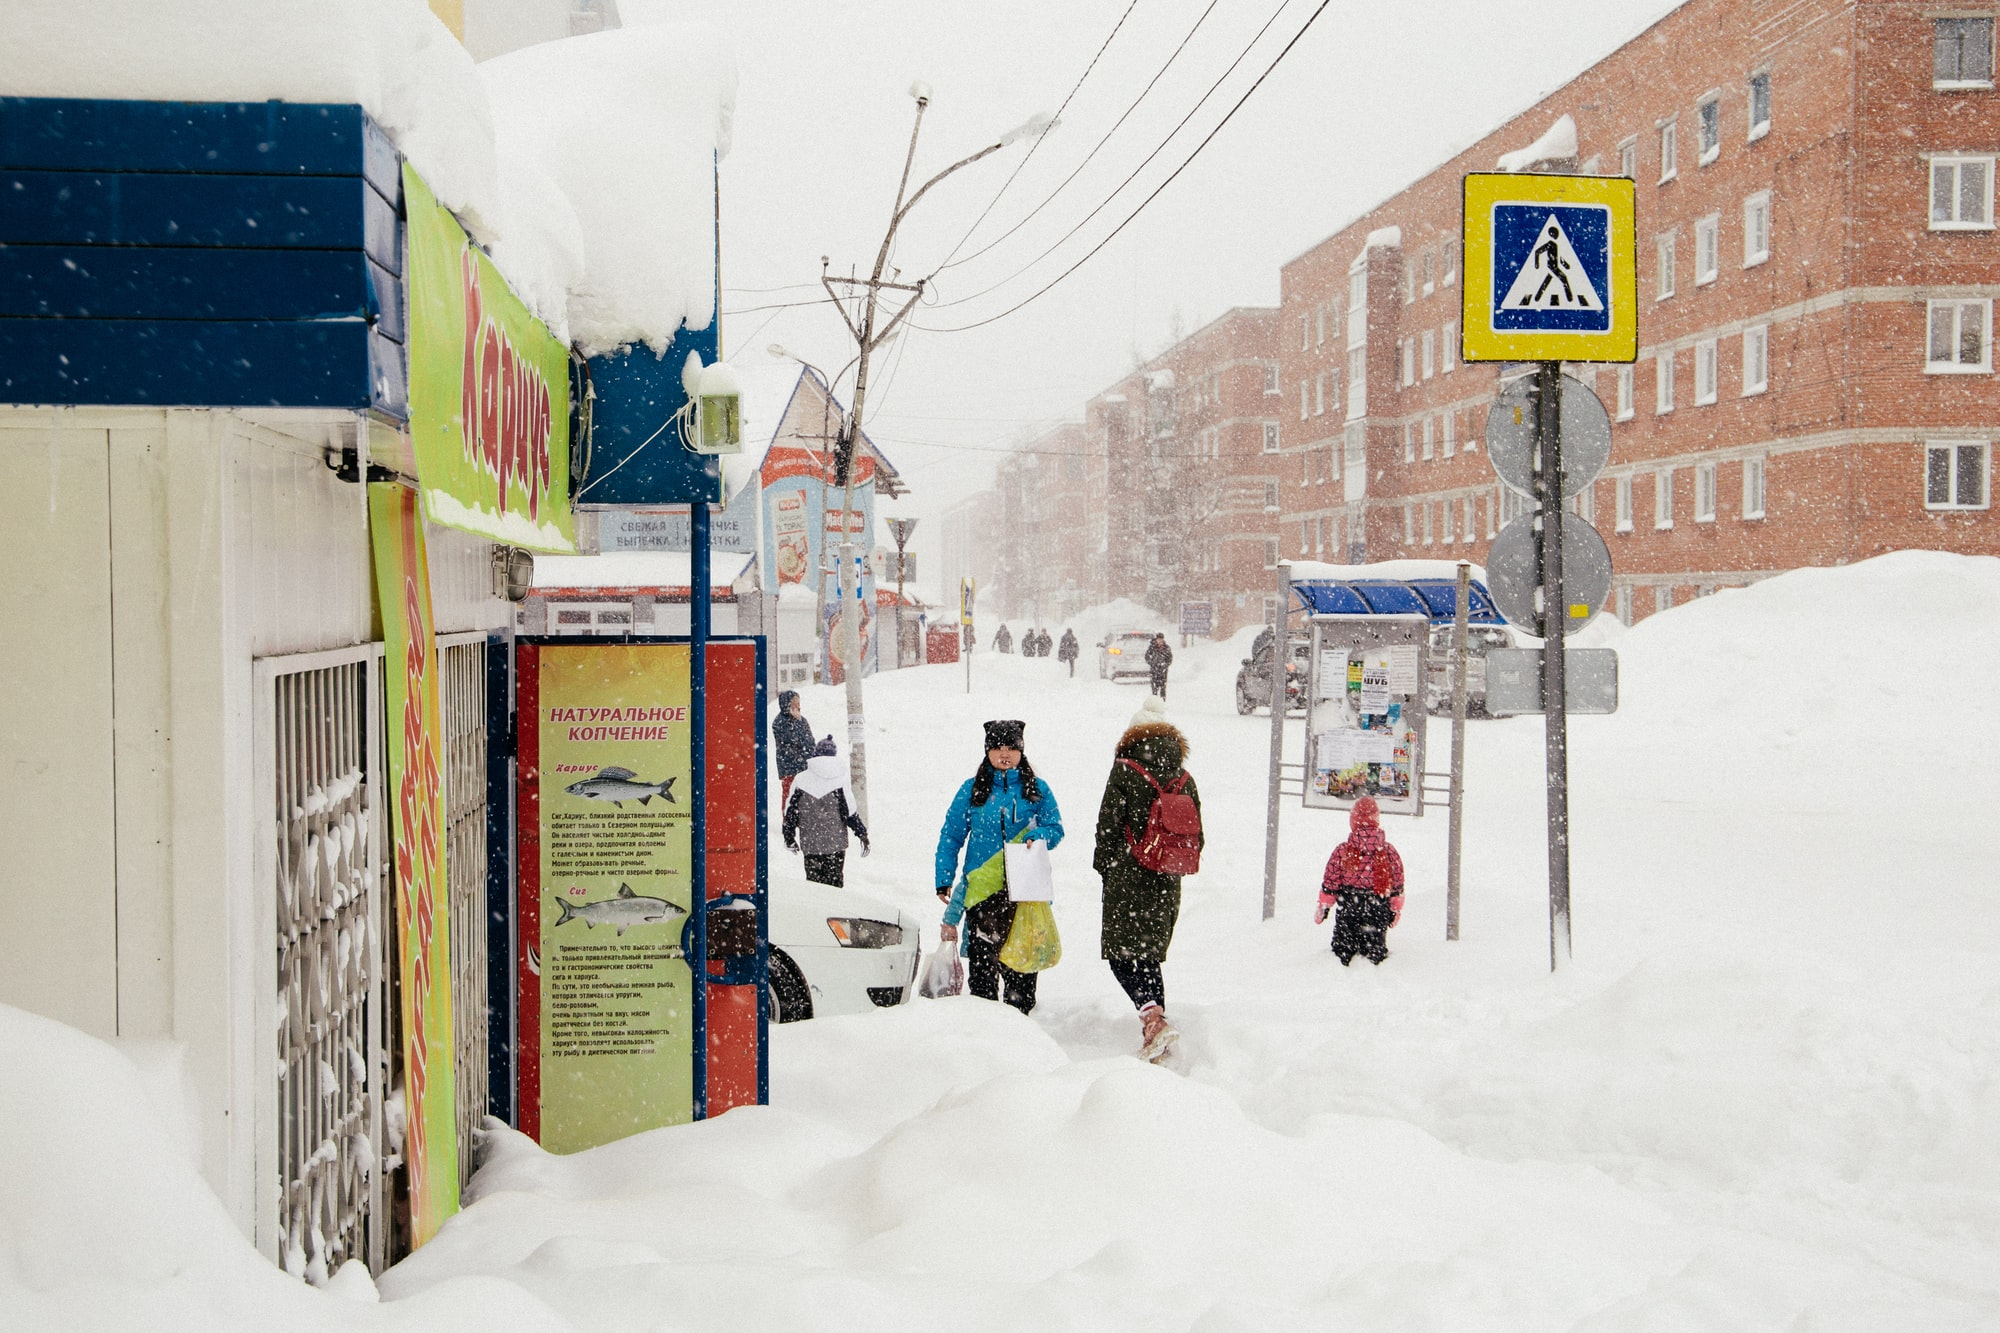 Winter in tiny Siberian town